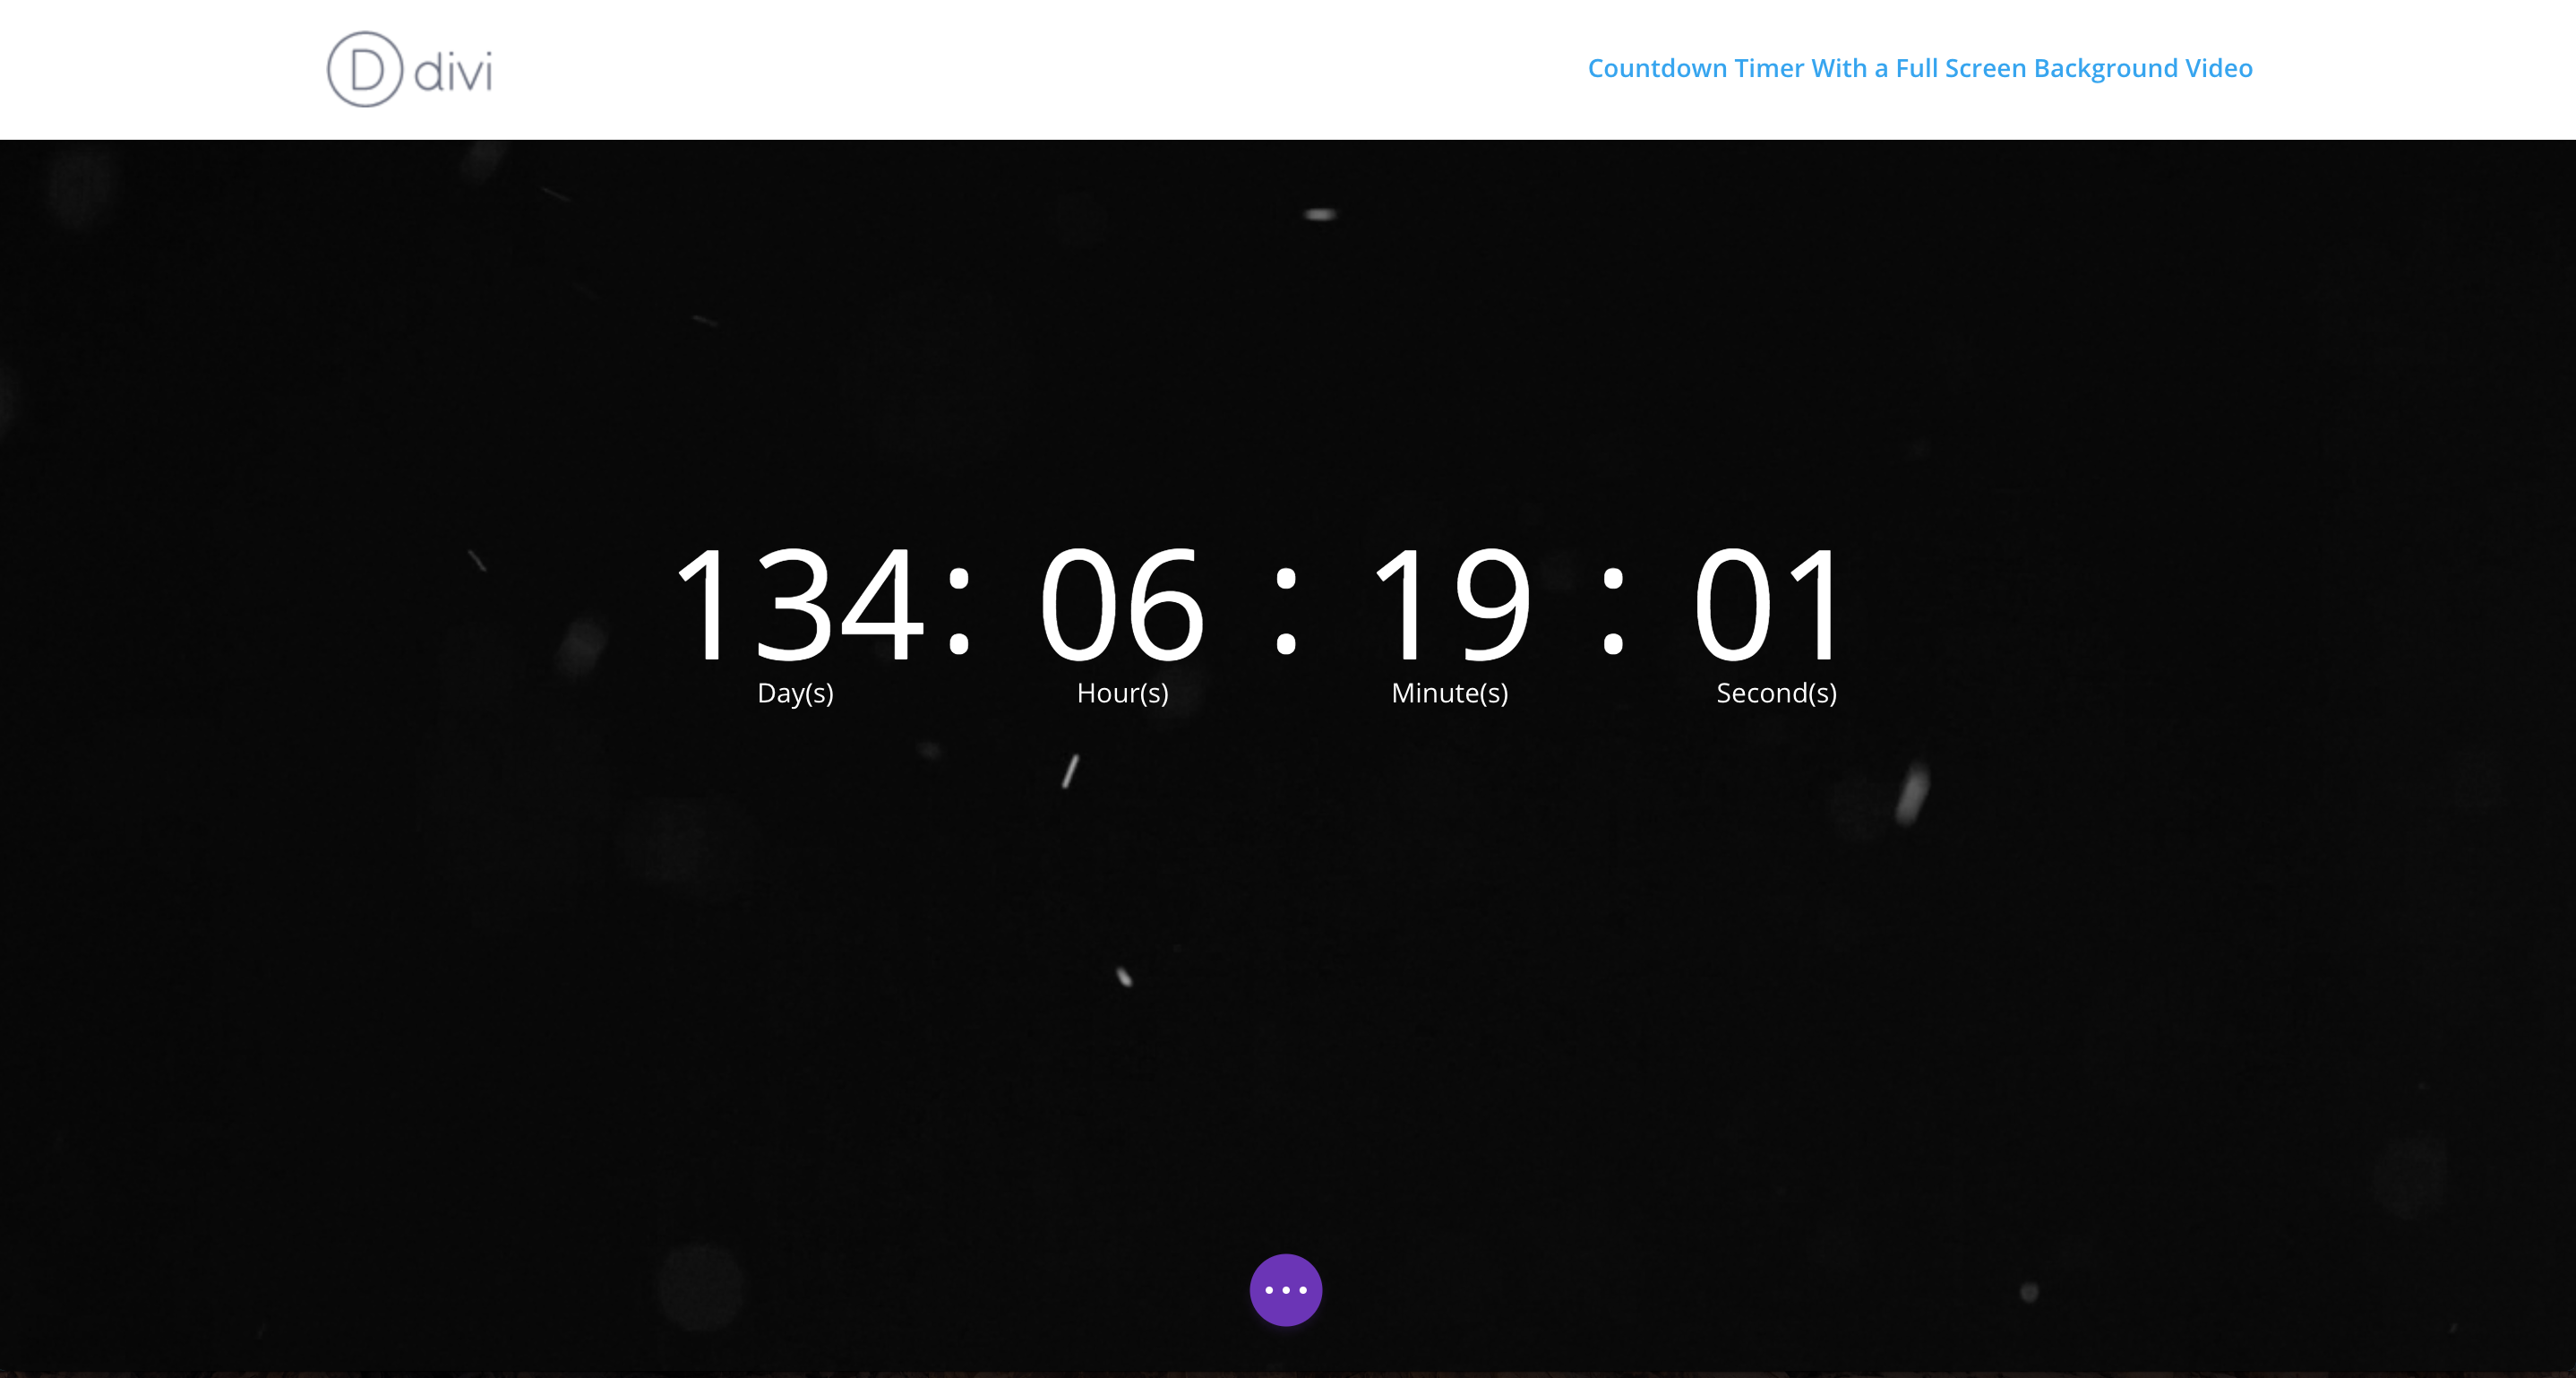 full screen background video countdown timer progress screenshot